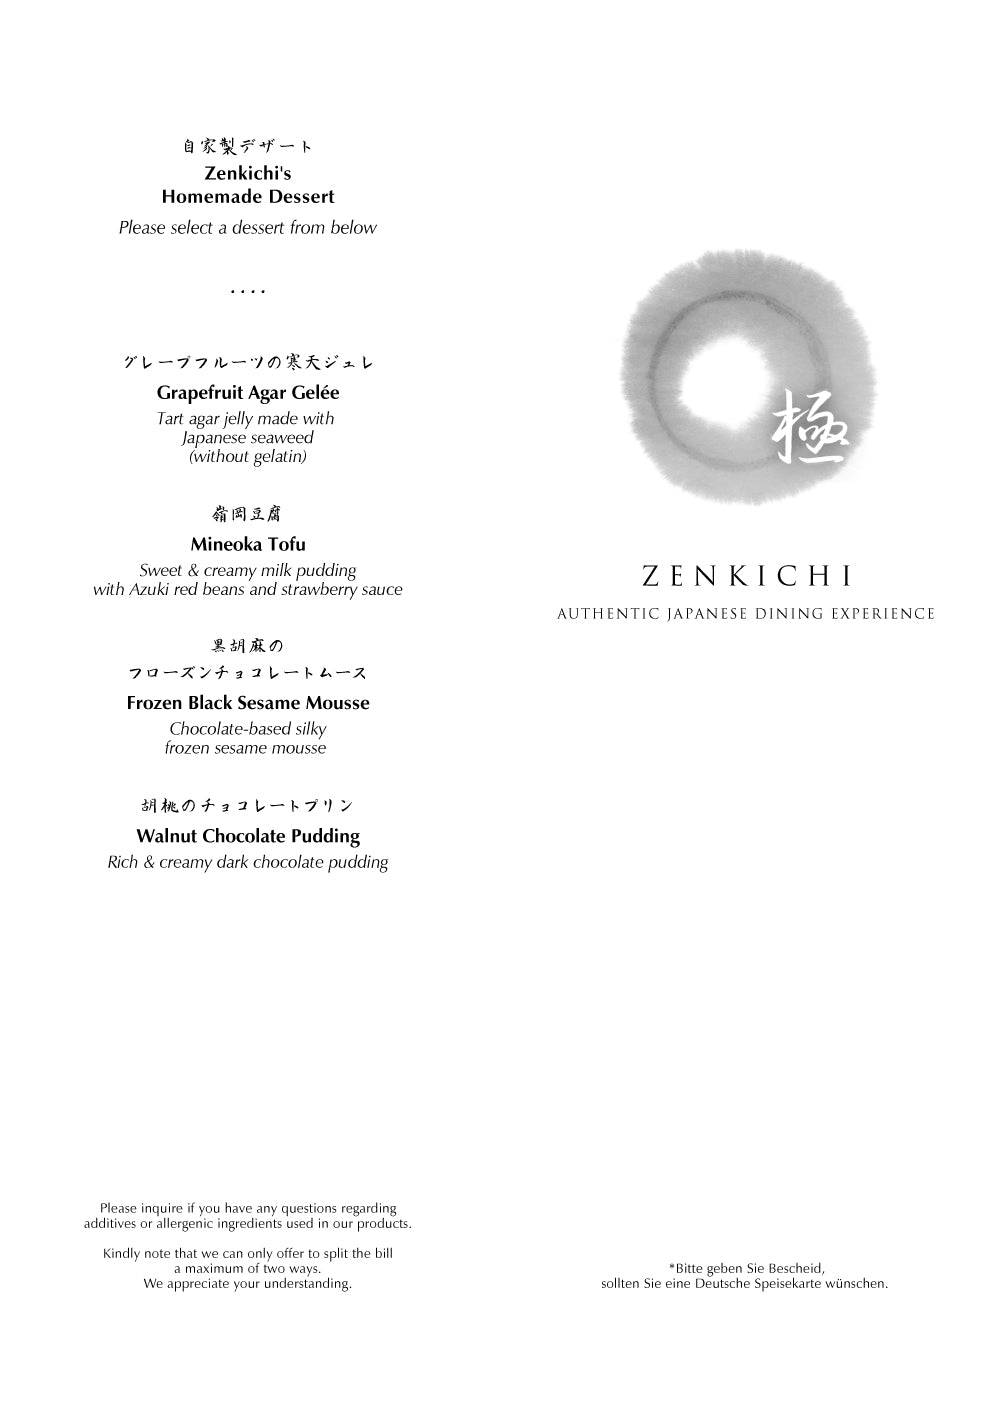 ZENKICHI EPICUREAN MENU